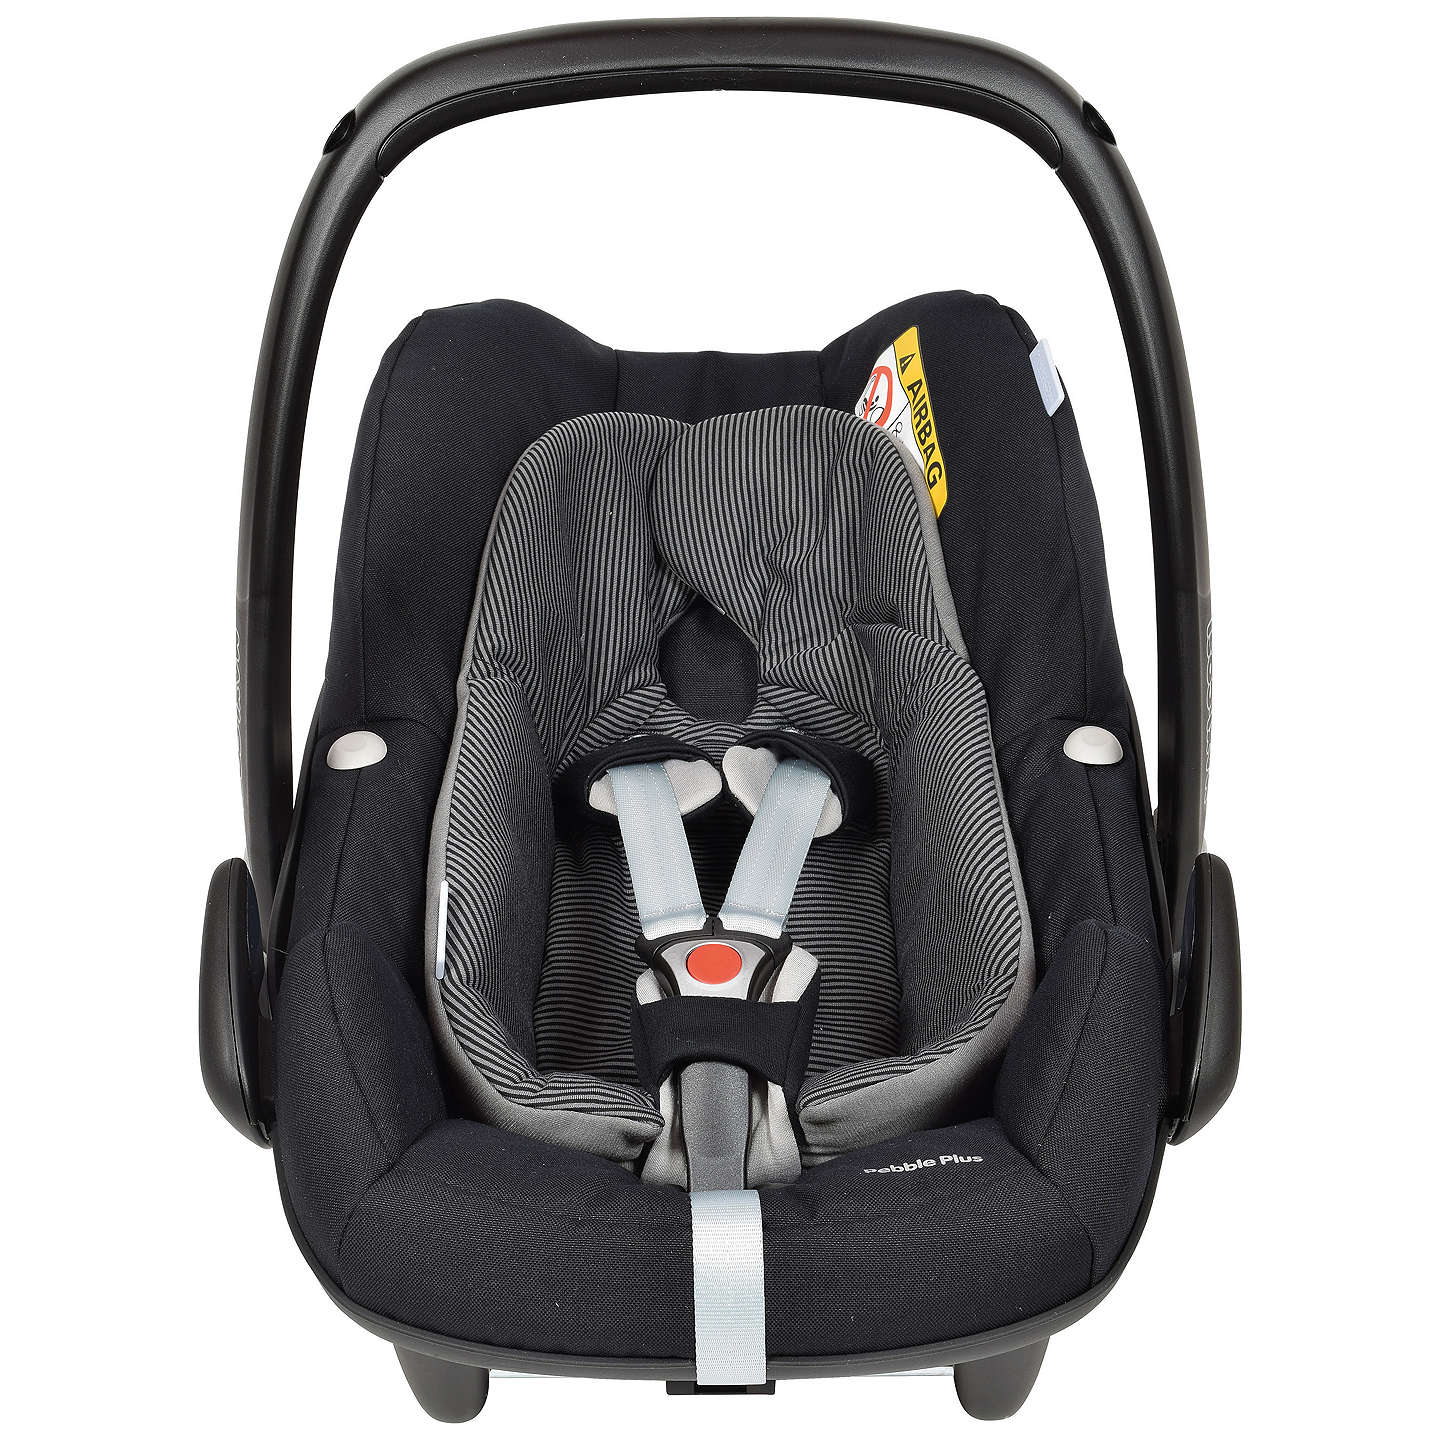 maxi cosi pebble plus i size group 0 baby car seat black. Black Bedroom Furniture Sets. Home Design Ideas